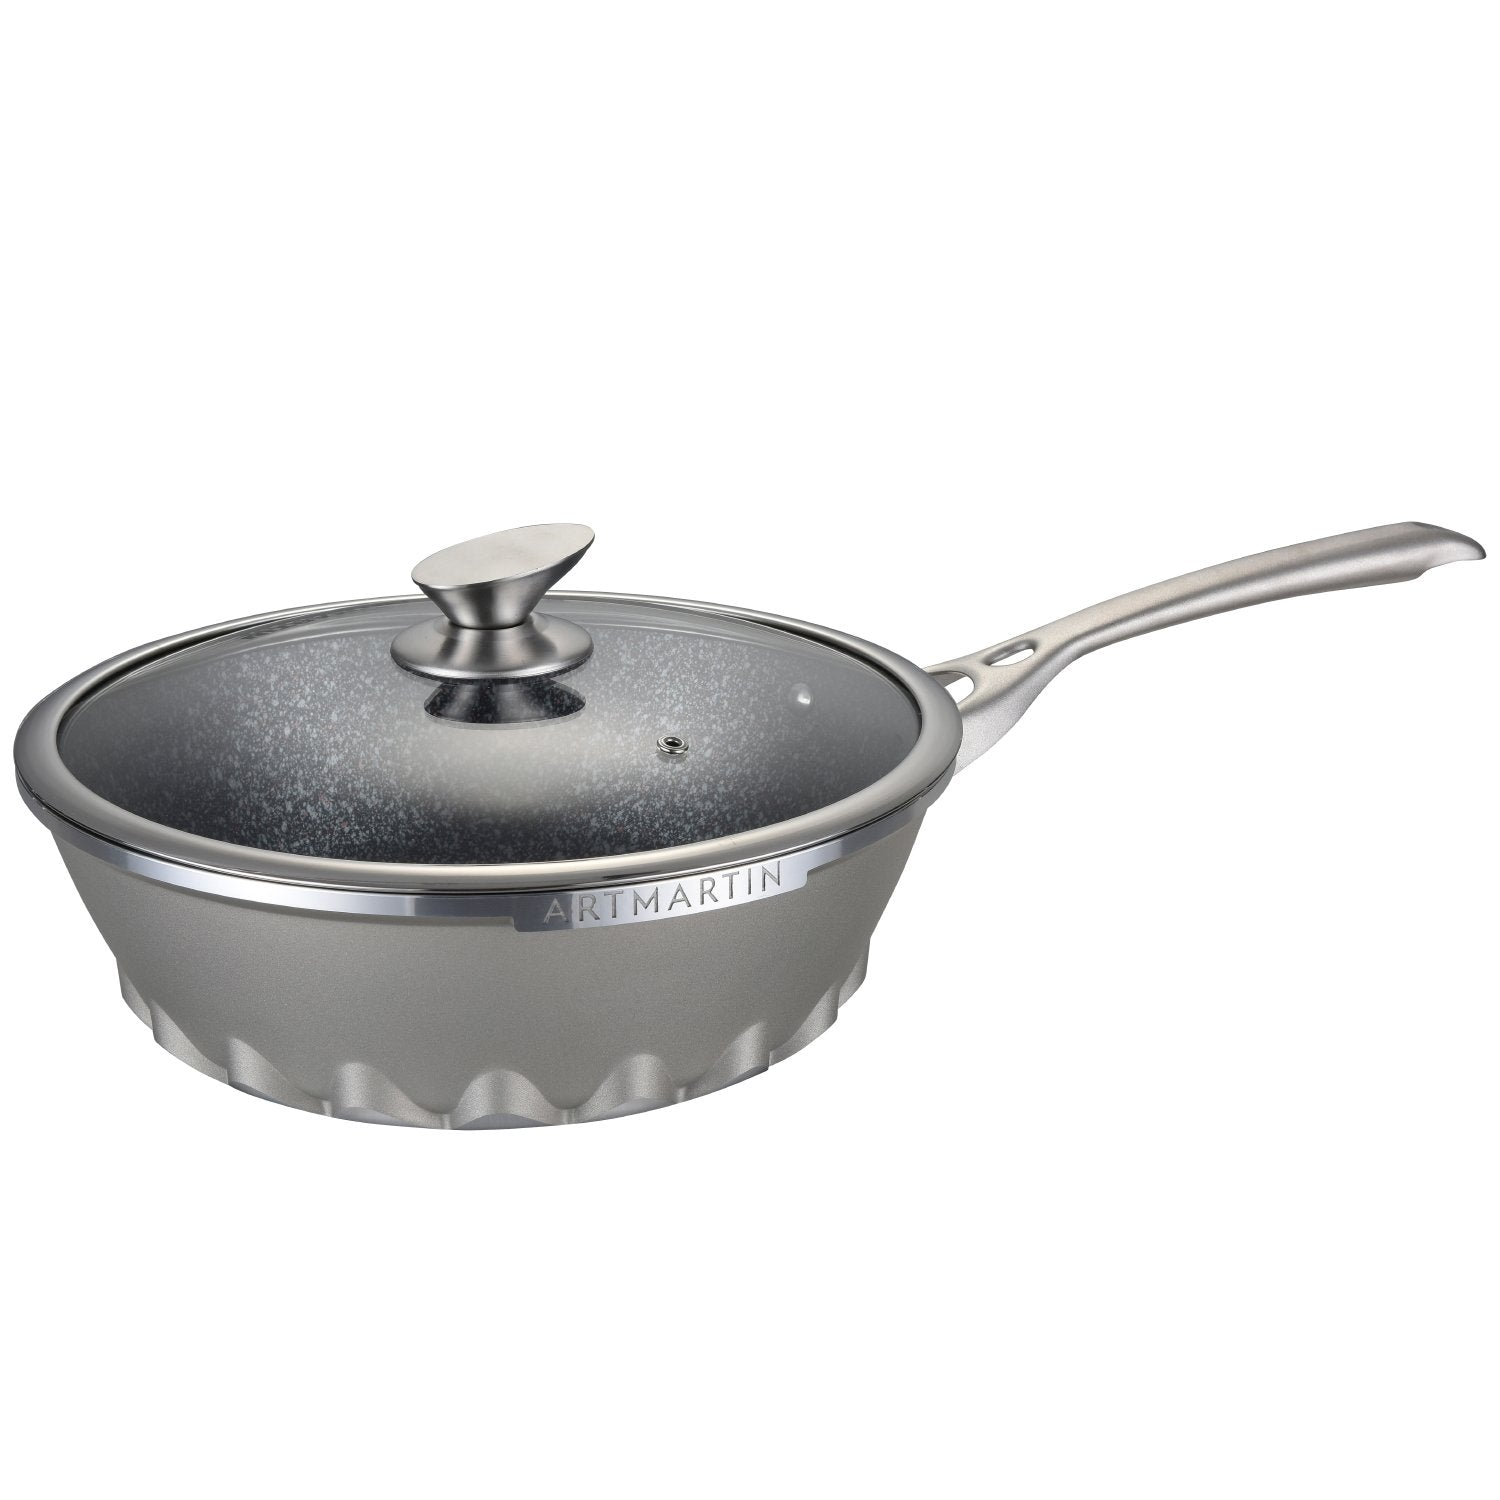 Non-Stick Ceramic Coated Die-Cast Aluminum Round Wok & Lid with Induction Bottom - 11 inch